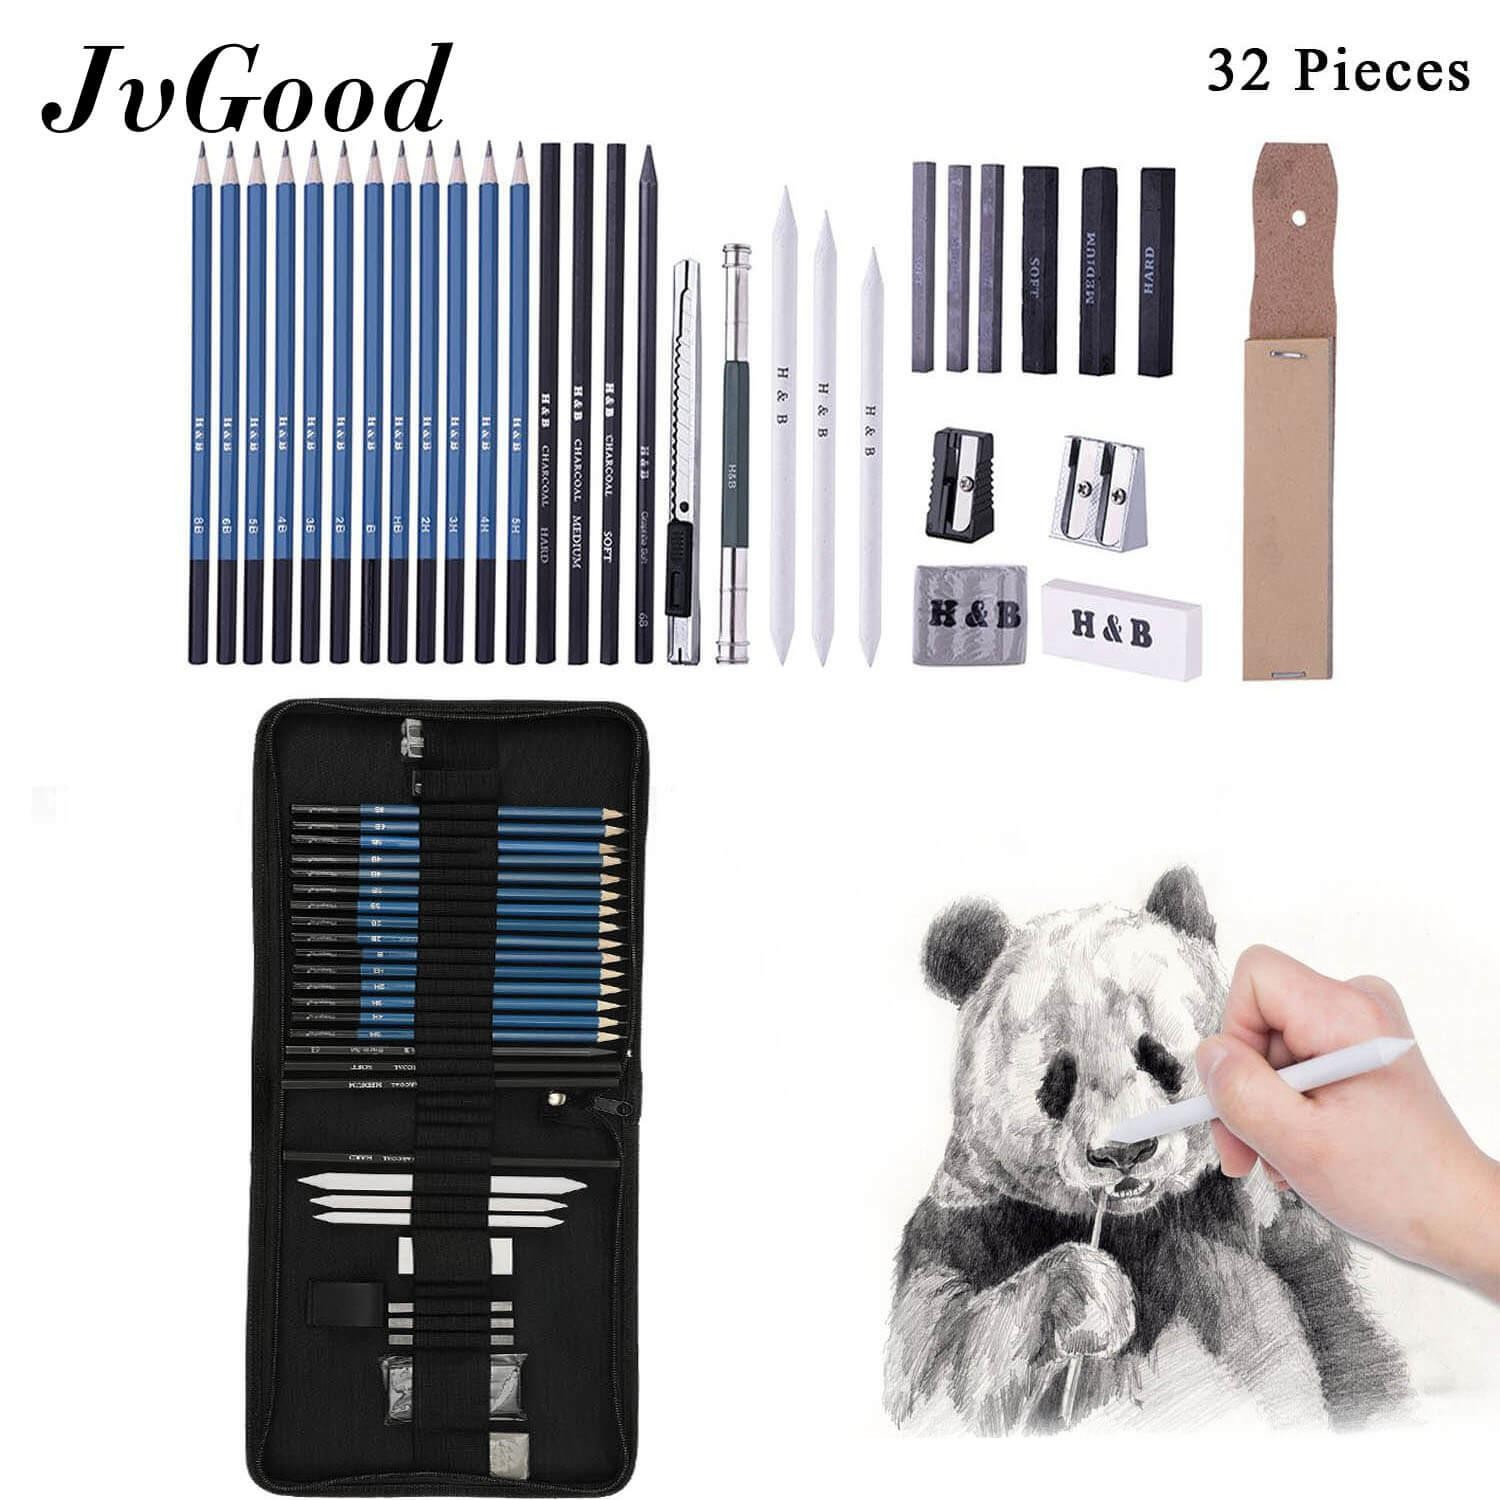 JvGood Professional Art Kit Art Supplies Drawing and Sketch Kit with Pencils Erasers Kit Bag Sketching